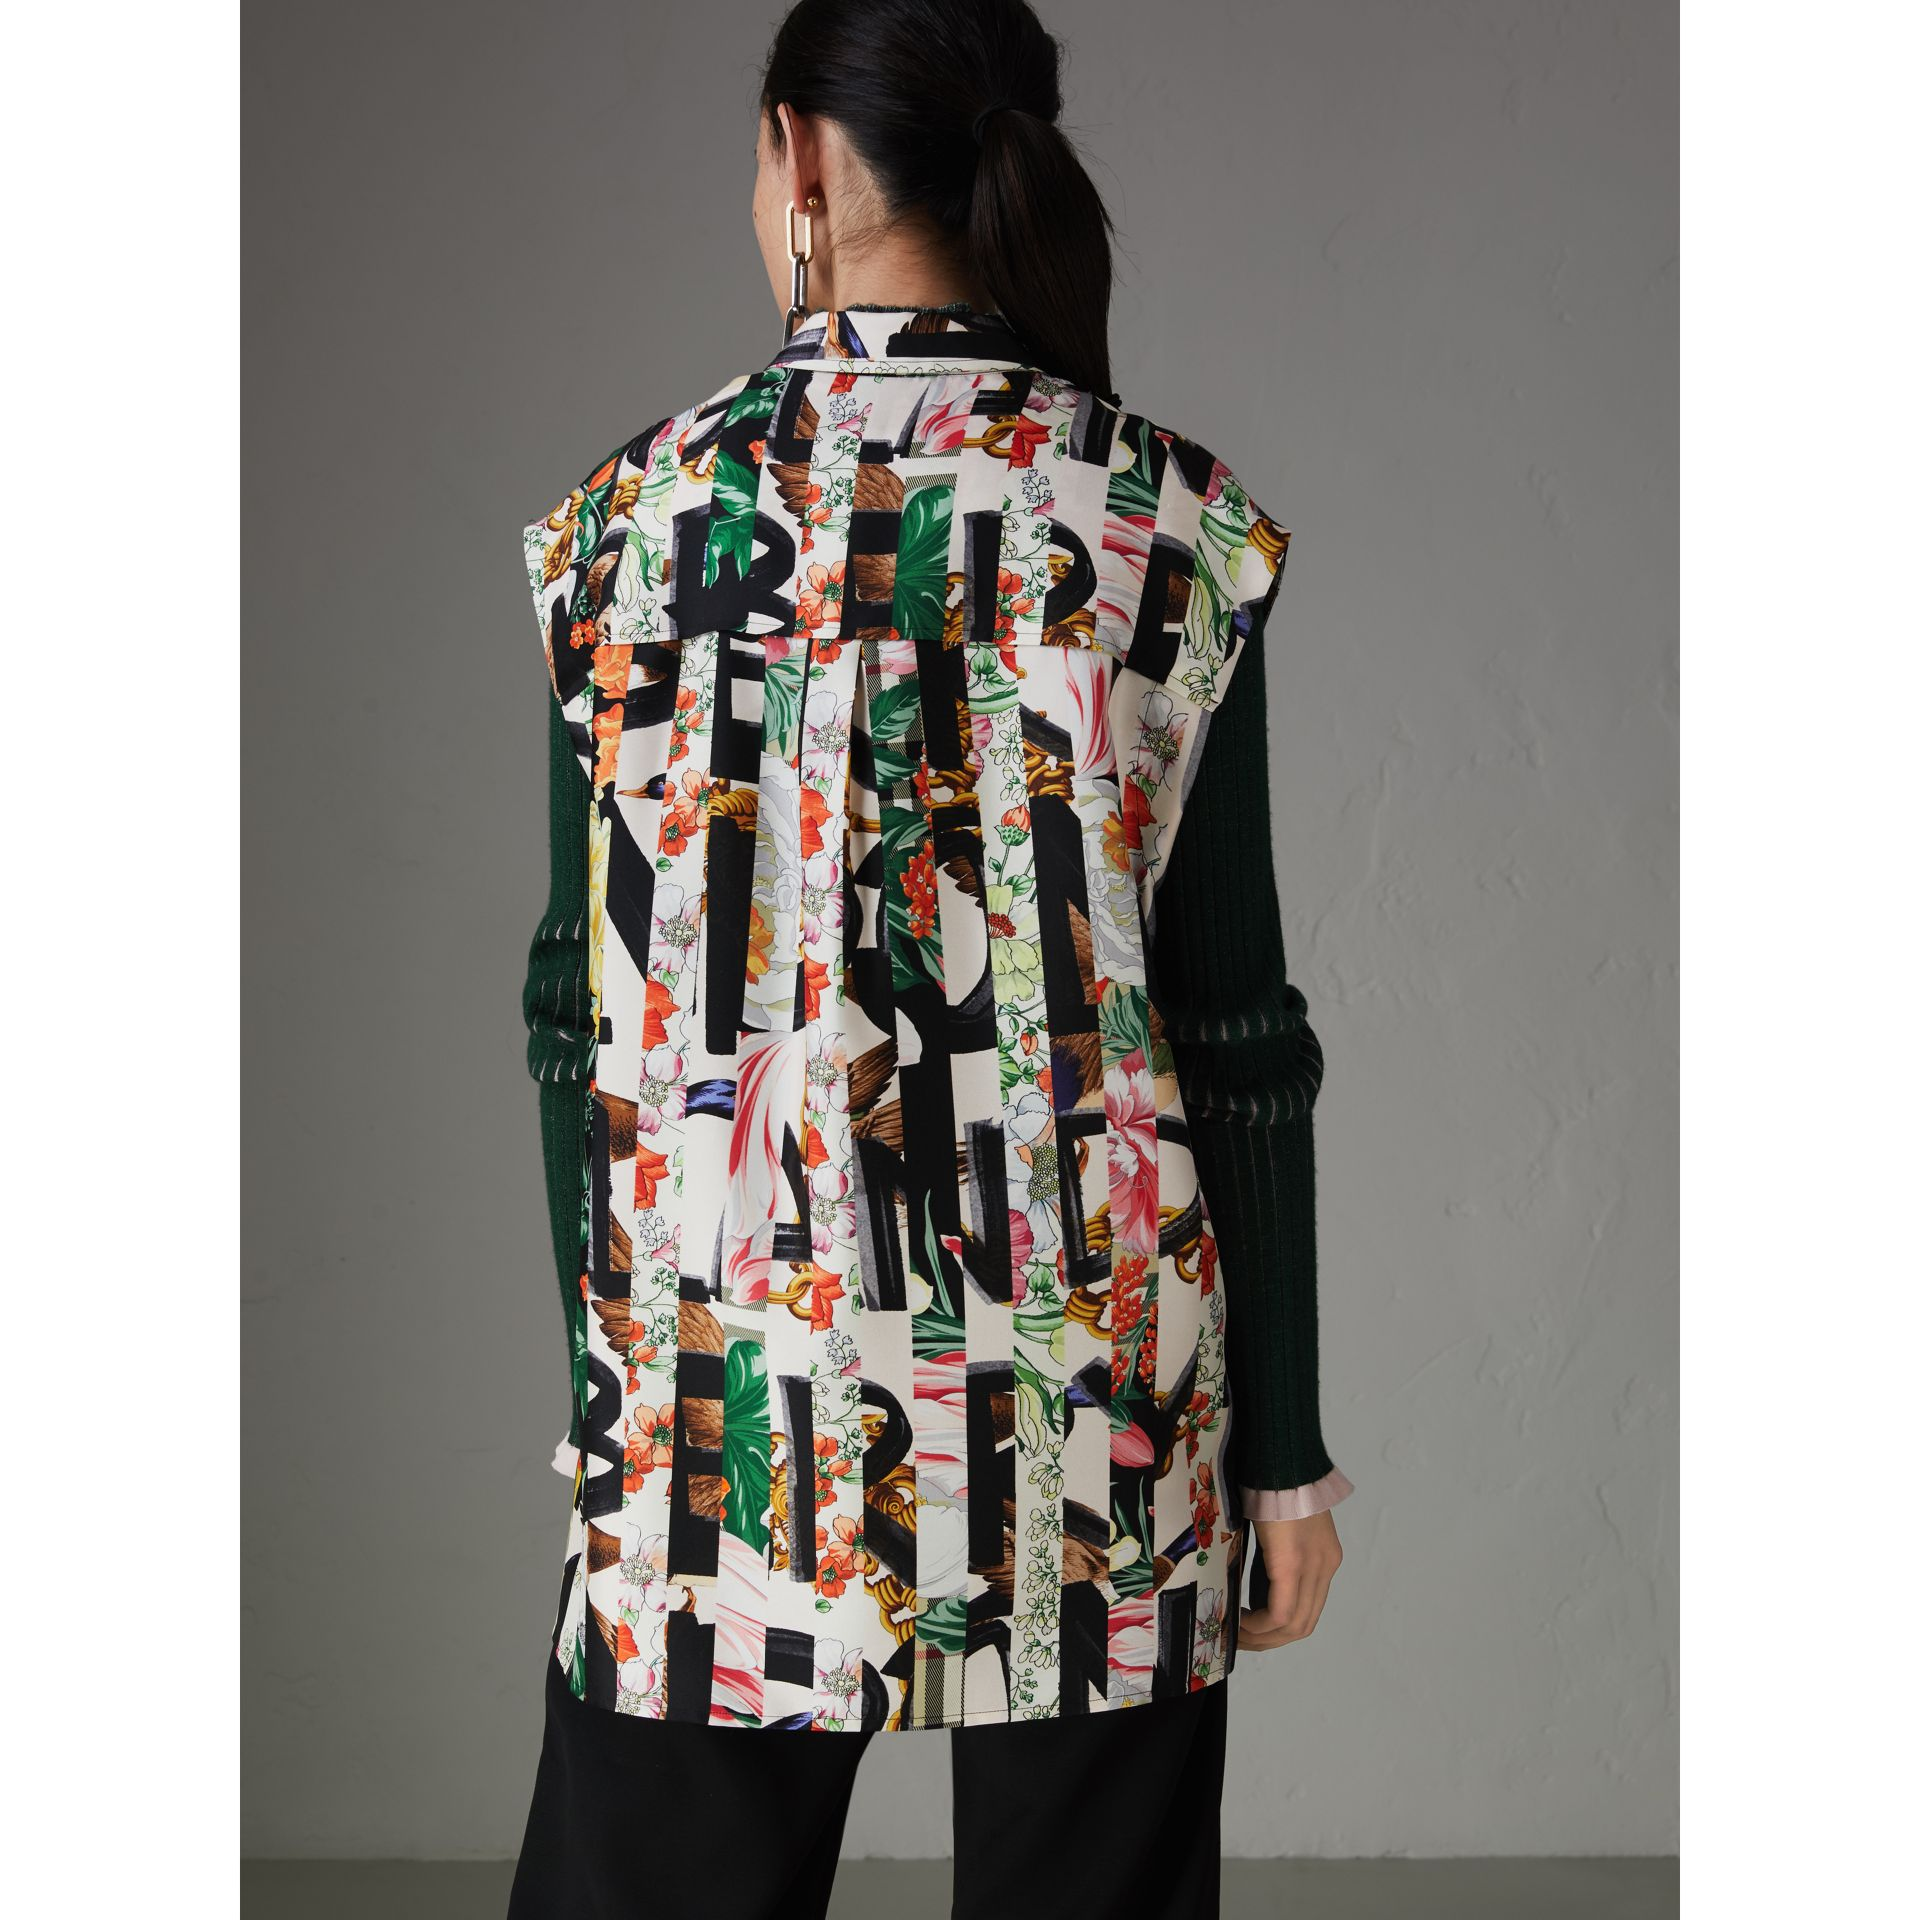 Archive Scarf Print Silk Sleeveless Shirt in Multicolour - Women | Burberry United Kingdom - gallery image 2